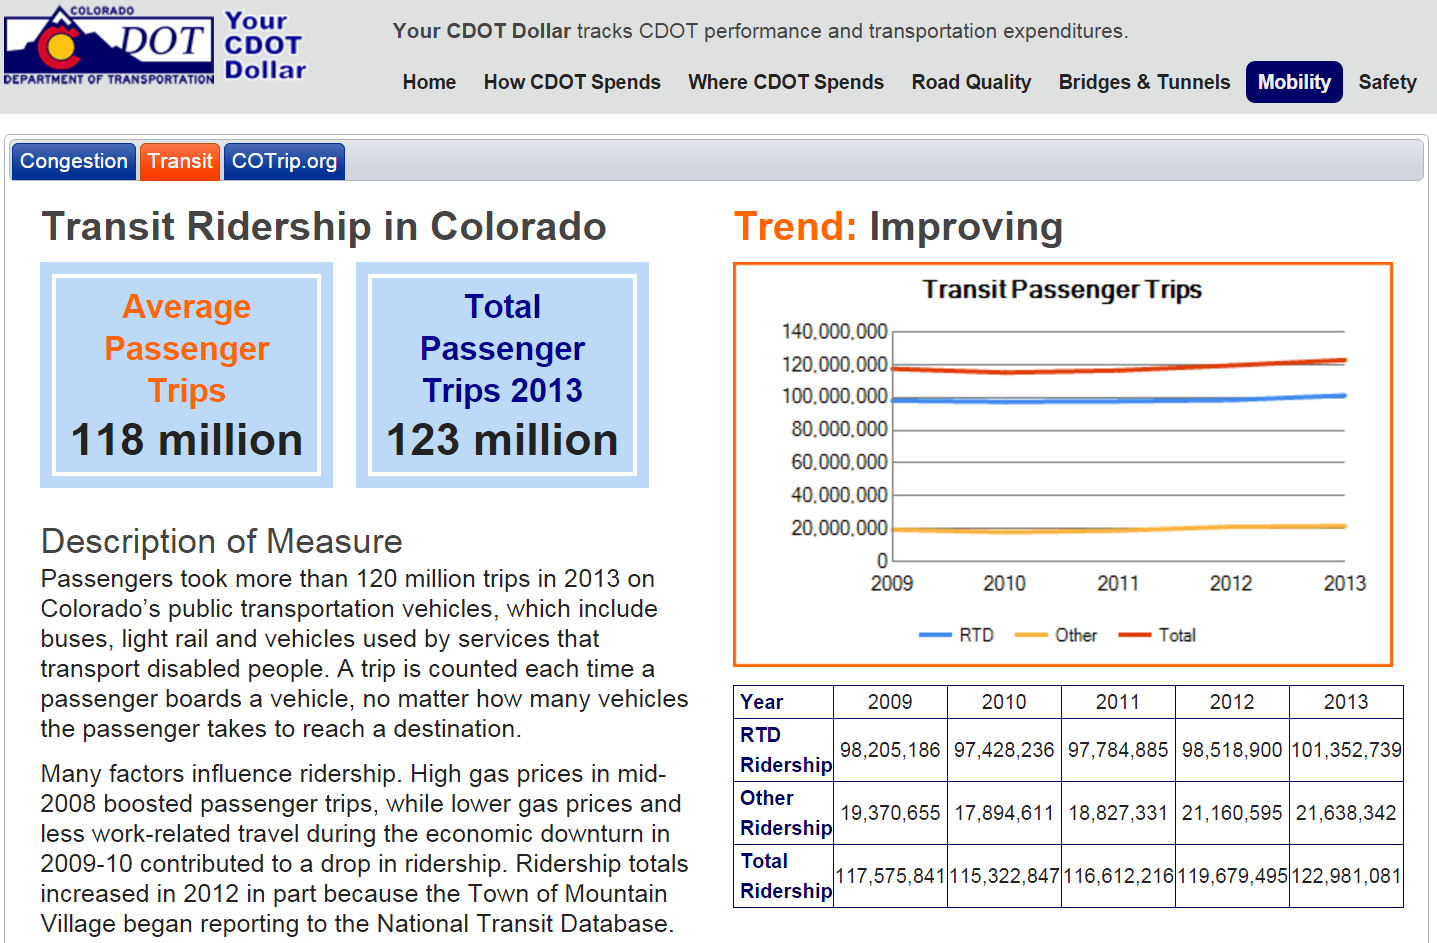 Screenshot of Your CDOT Dollar performance reporting website. Transit tab is highlighted with average passenger trips and total passenger trips values as well as graph showing transit passenger trips improving. Description of measure included as well.